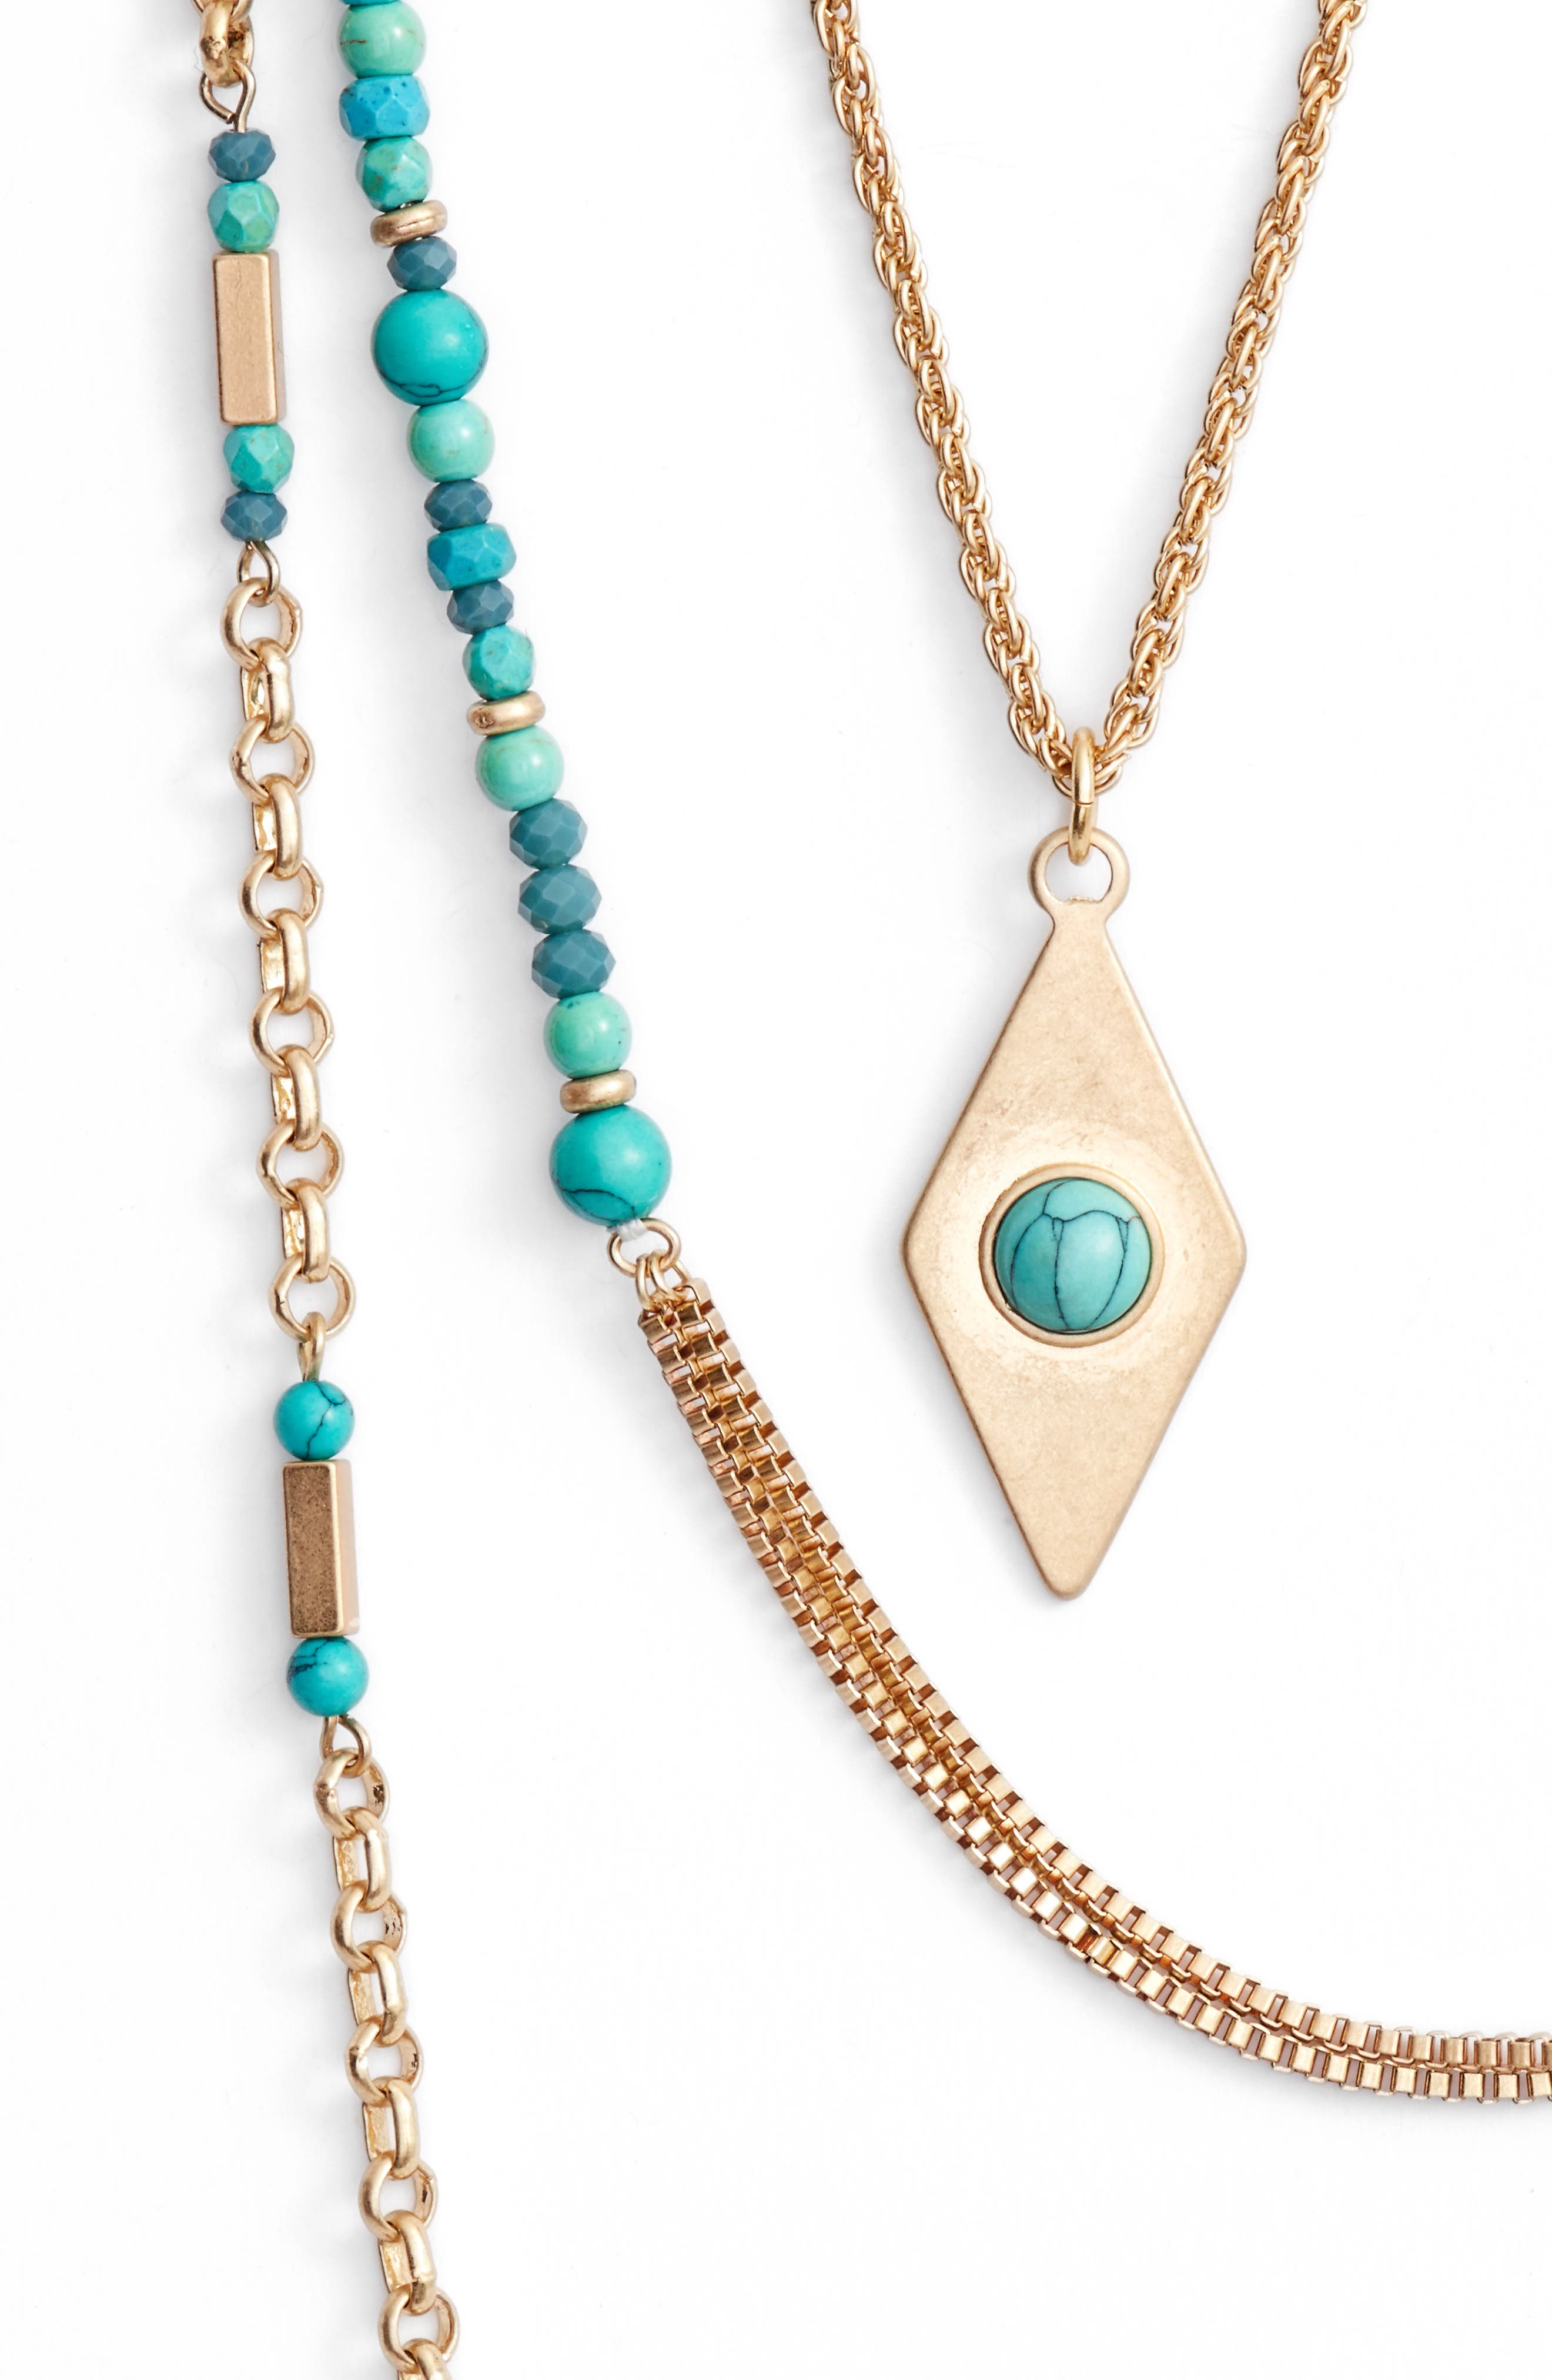 Multistrand Necklace,                             Alternate thumbnail 2, color,                             Turquoise- Gold